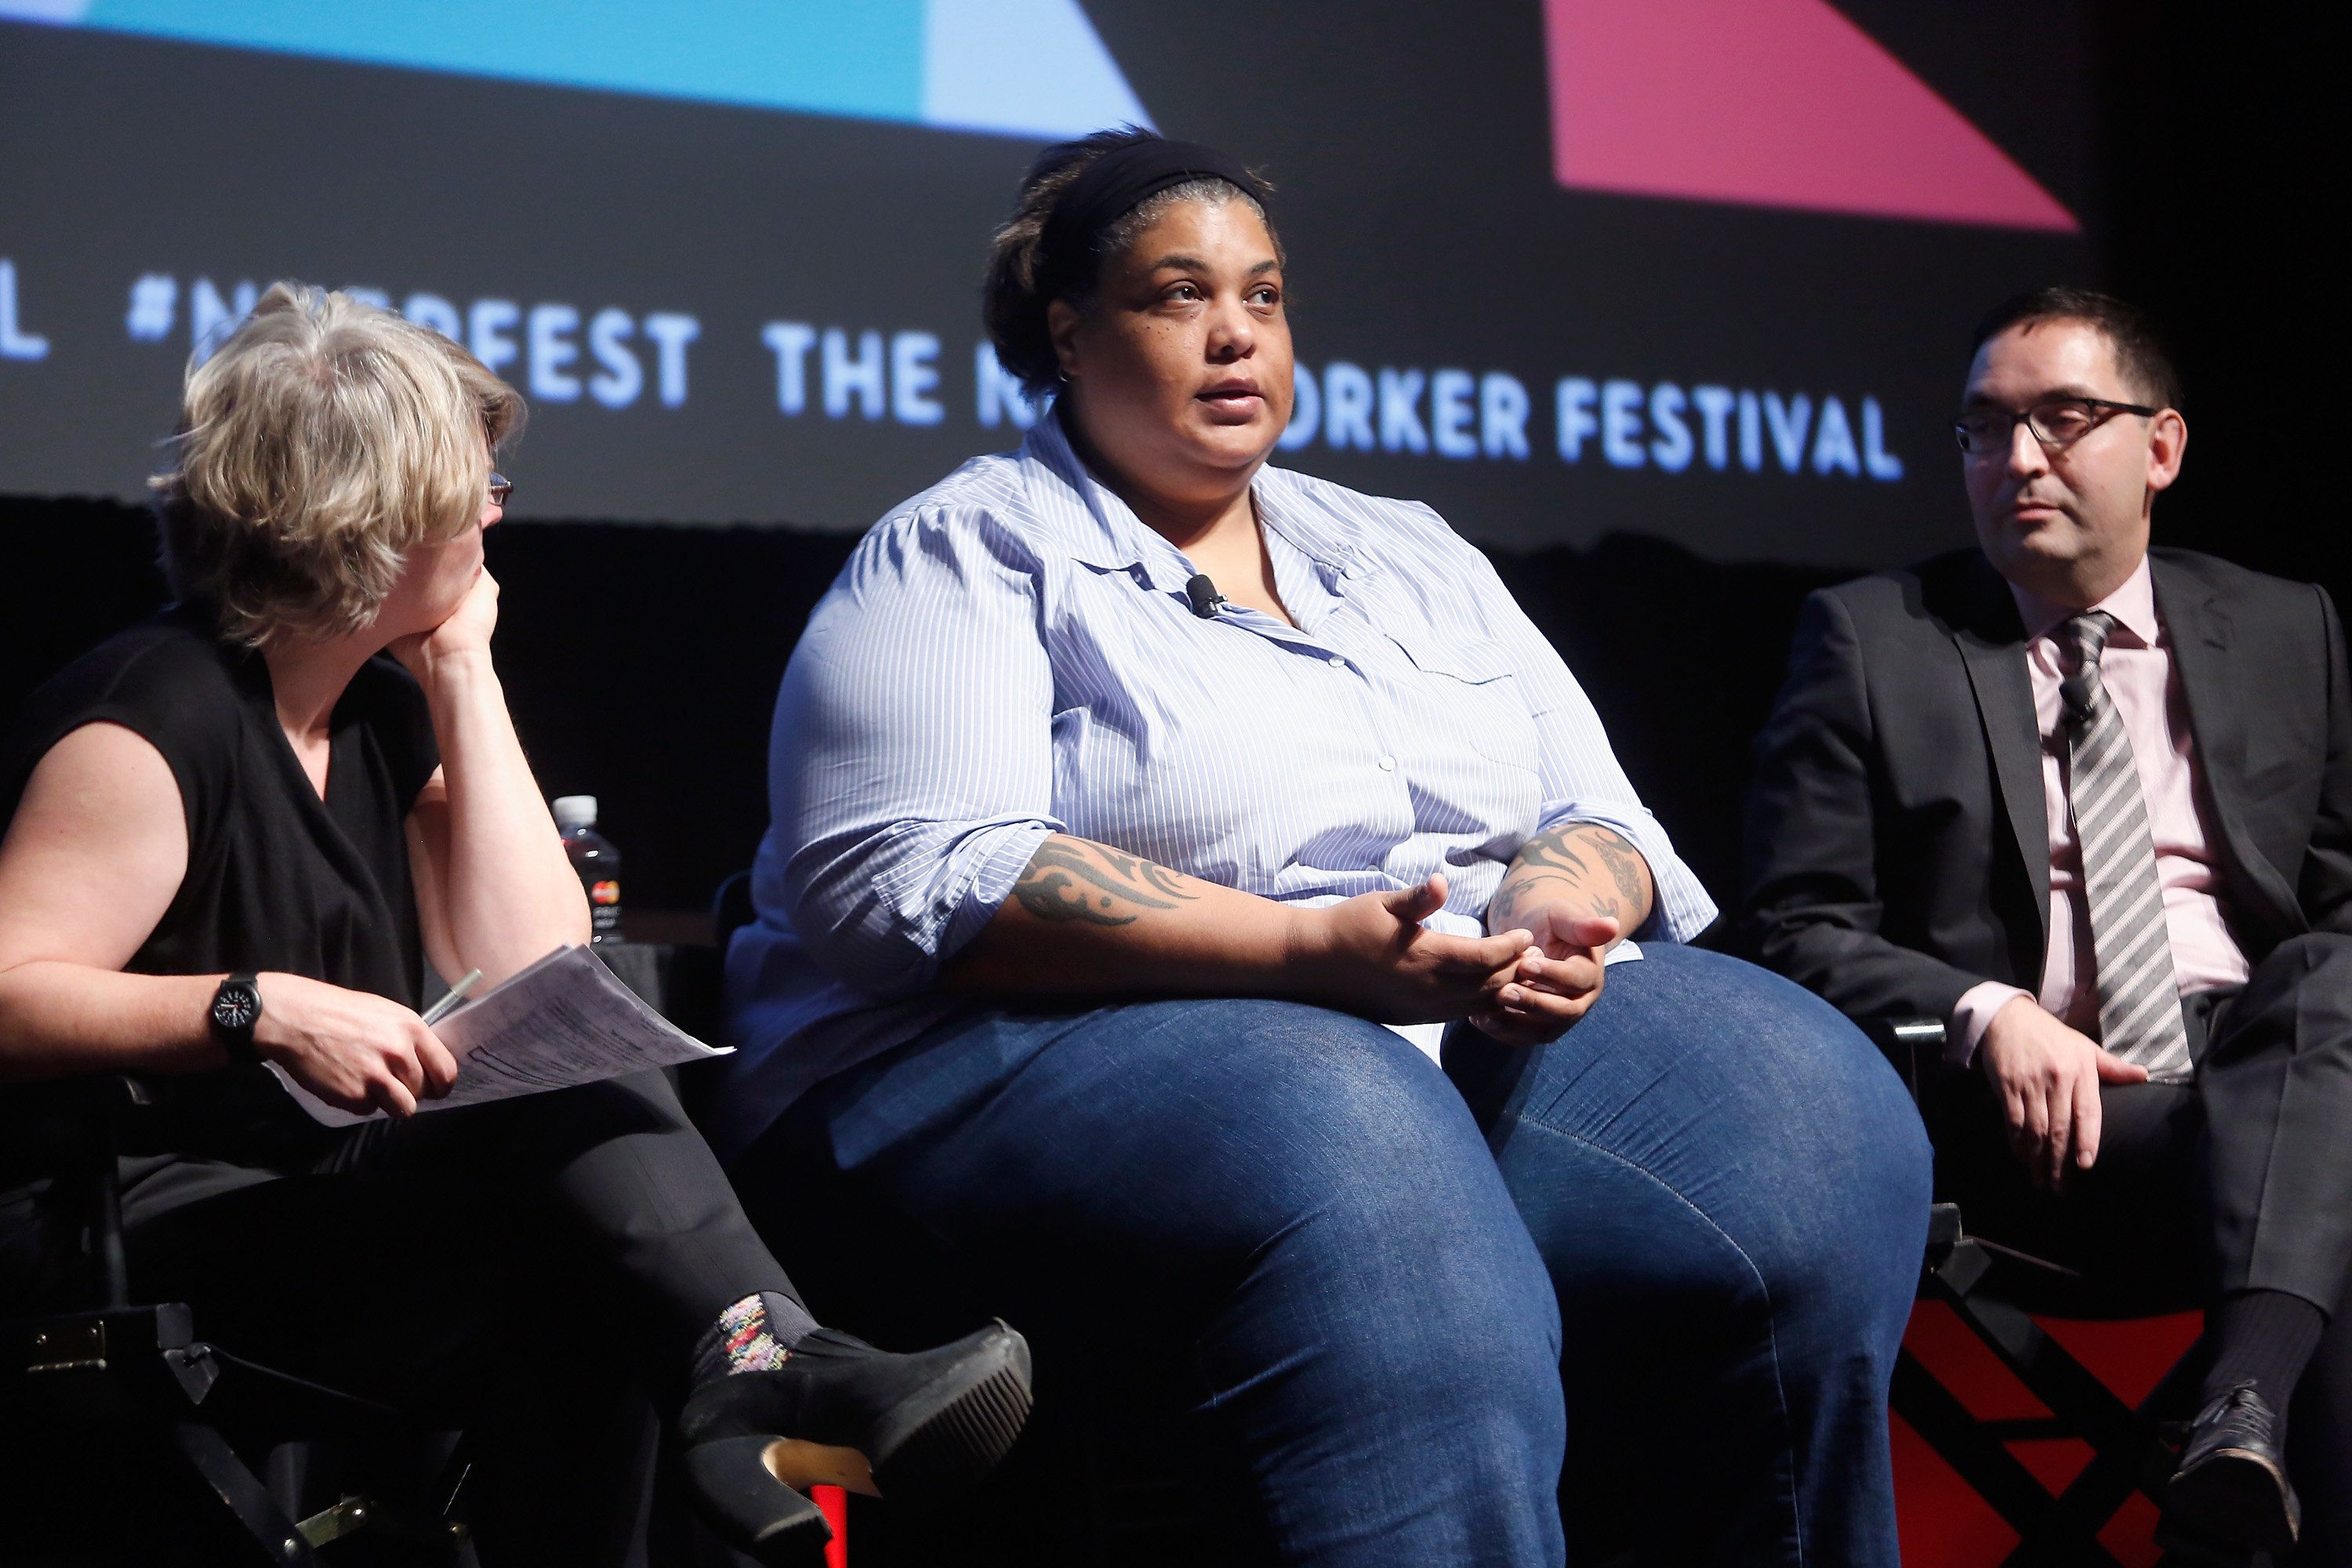 NEW YORK, NY - OCTOBER 04:  (L-R) The New Yorker staff writer Jill Lepore, writer Roxane Gay, and professor of history at Northwestern University Geraldo Cadava speak onstage at The Hillary Question during The New Yorker Festival 2015 at SVA Theater on October 4, 2015 in New York City.  (Photo by Thos Robinson/Getty Images for The New Yorker)